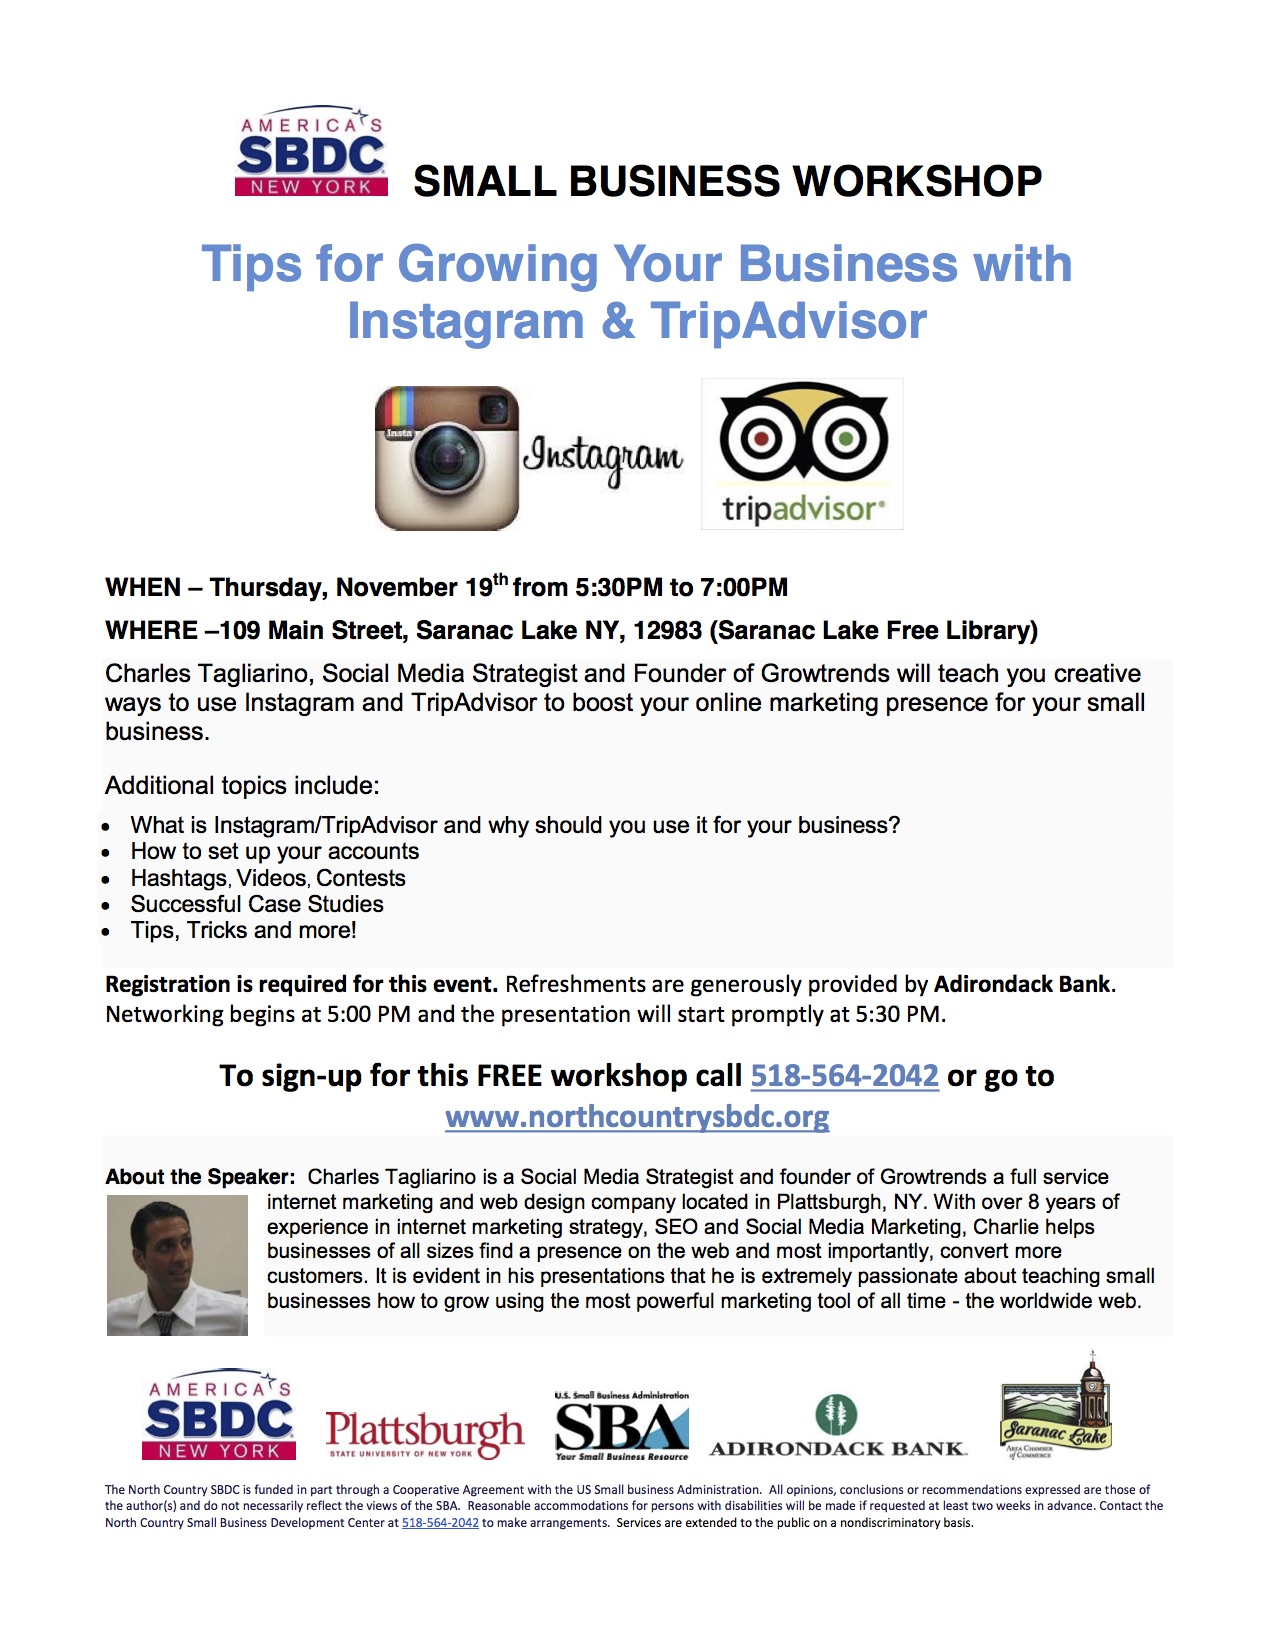 Workshop On Growing Your Business With Instagram And Tripadvisor